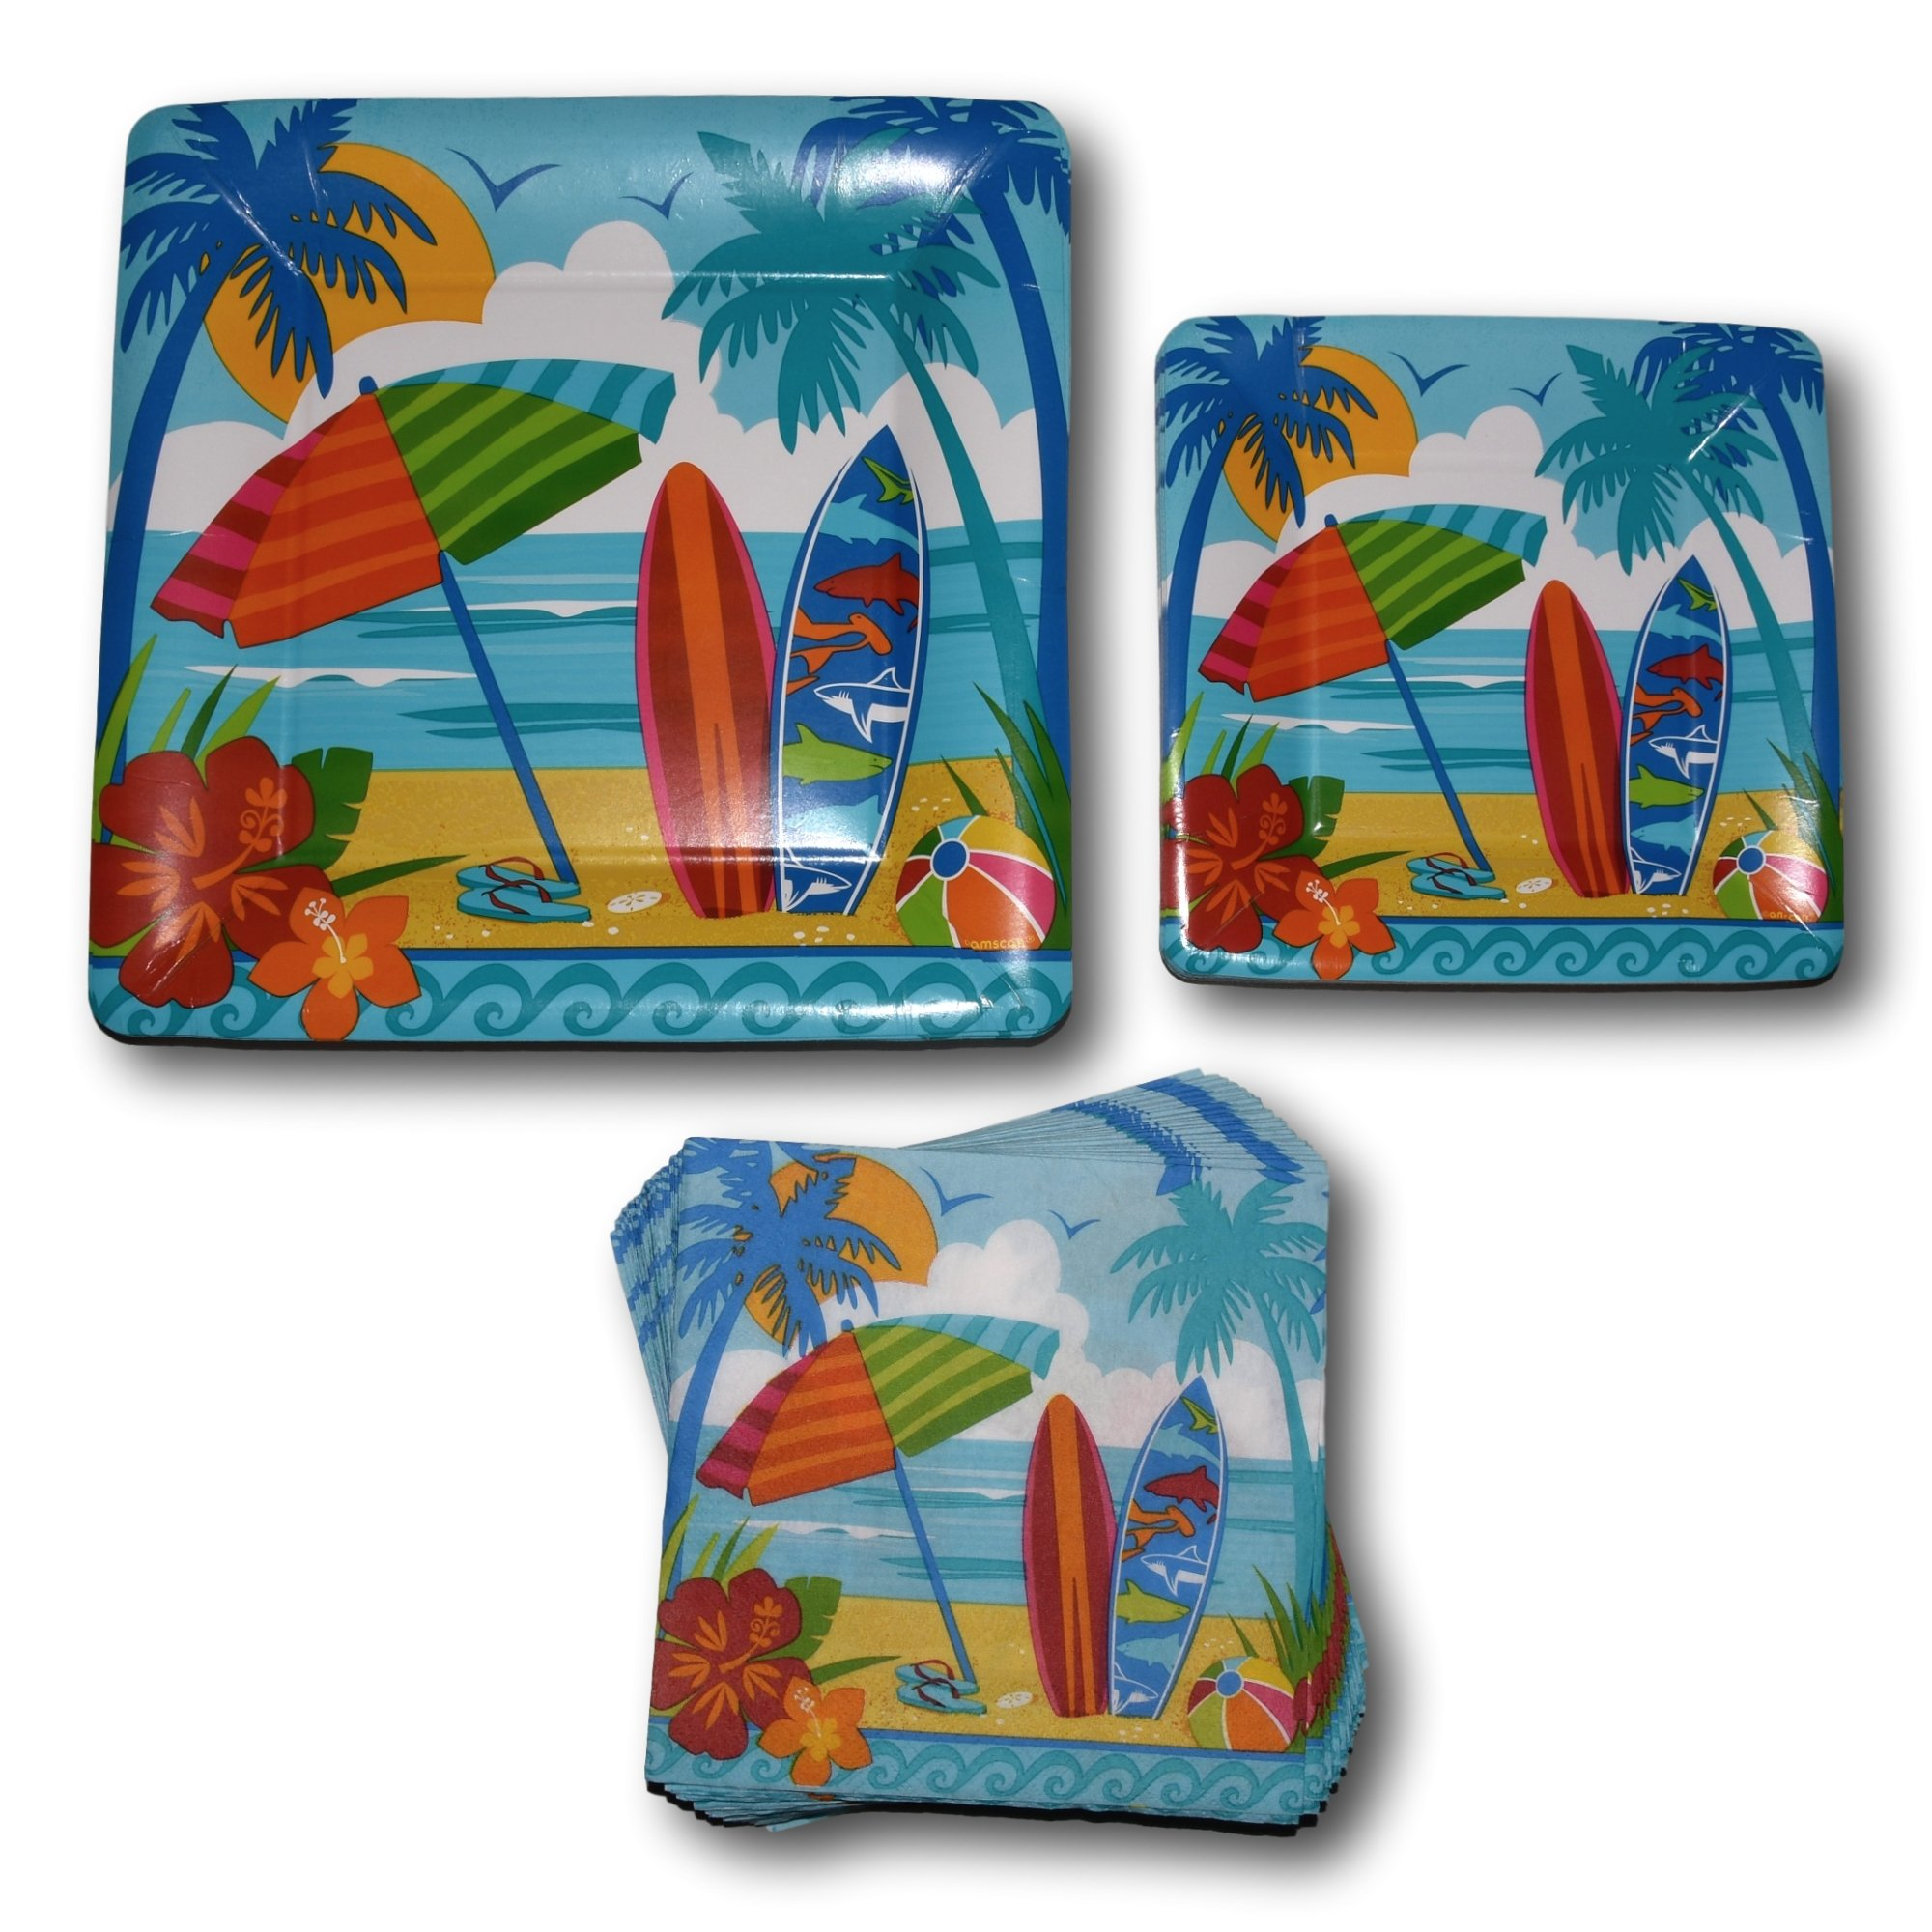 Combined Brands Summer Surfboard Beach Hawaiian Tropical Luau Paper Plates Napkins Party Supply Bundle - Picnic Tableware Set Includes - Beach Dinner Plates - Dessert Plates Napkins by Combined Brands